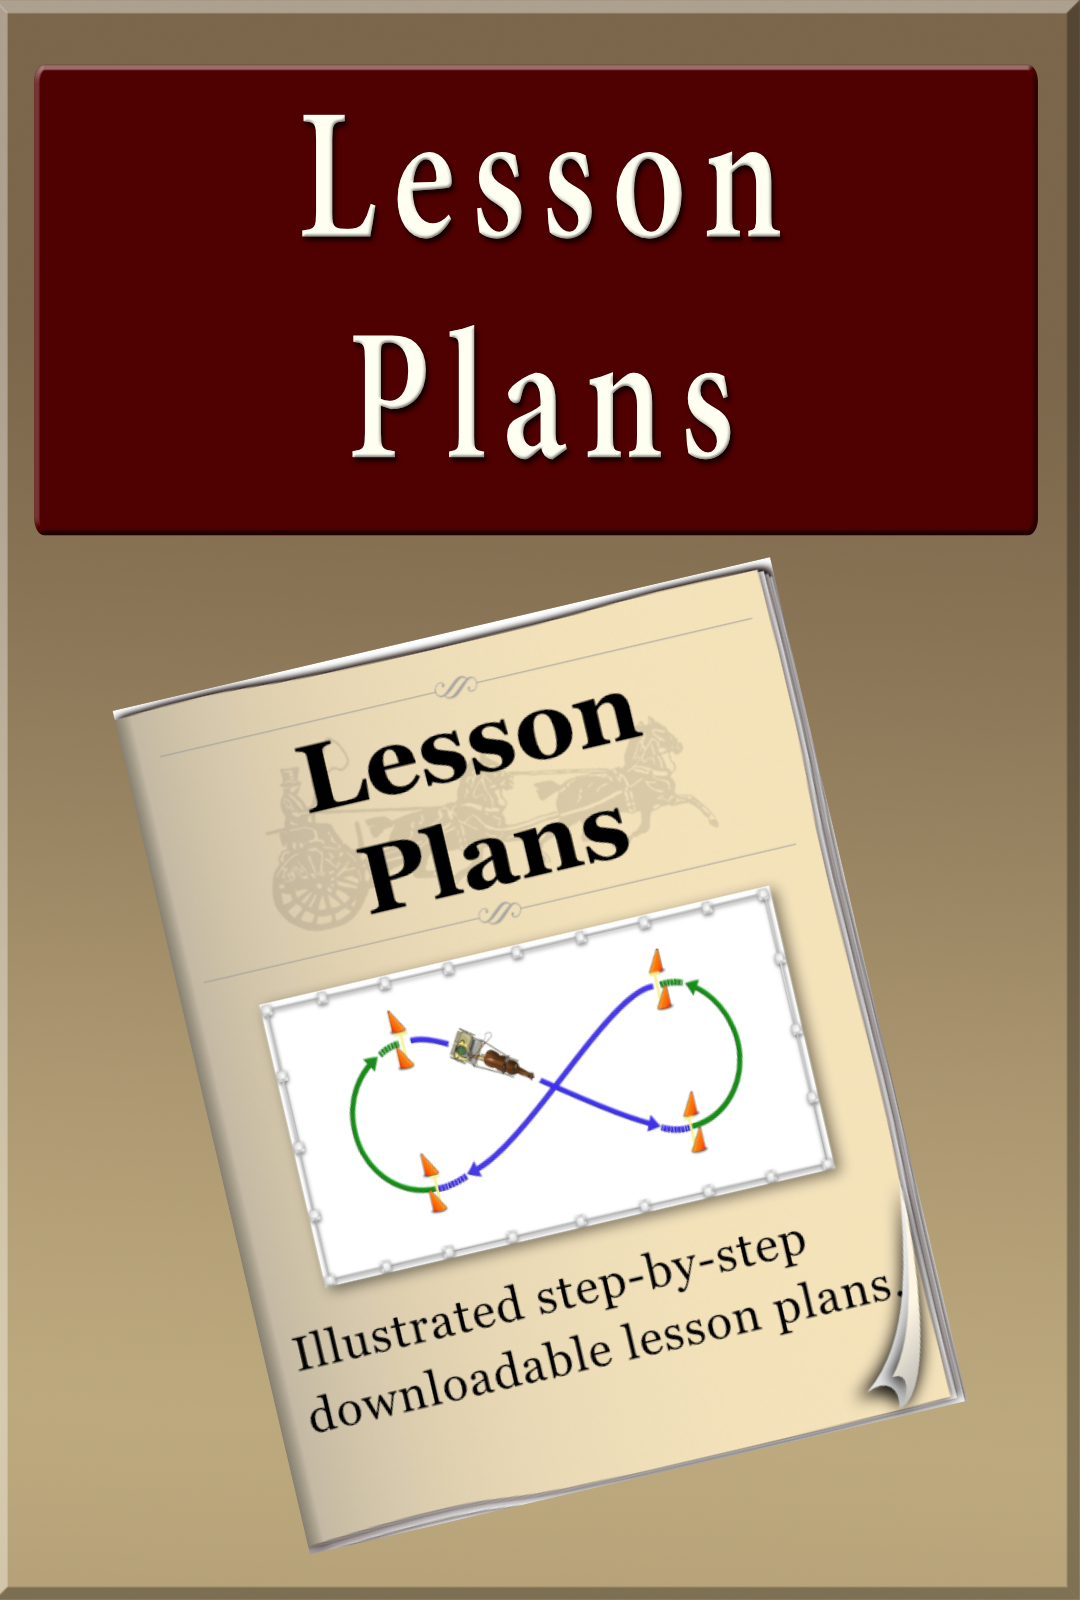 See Lesson Plans